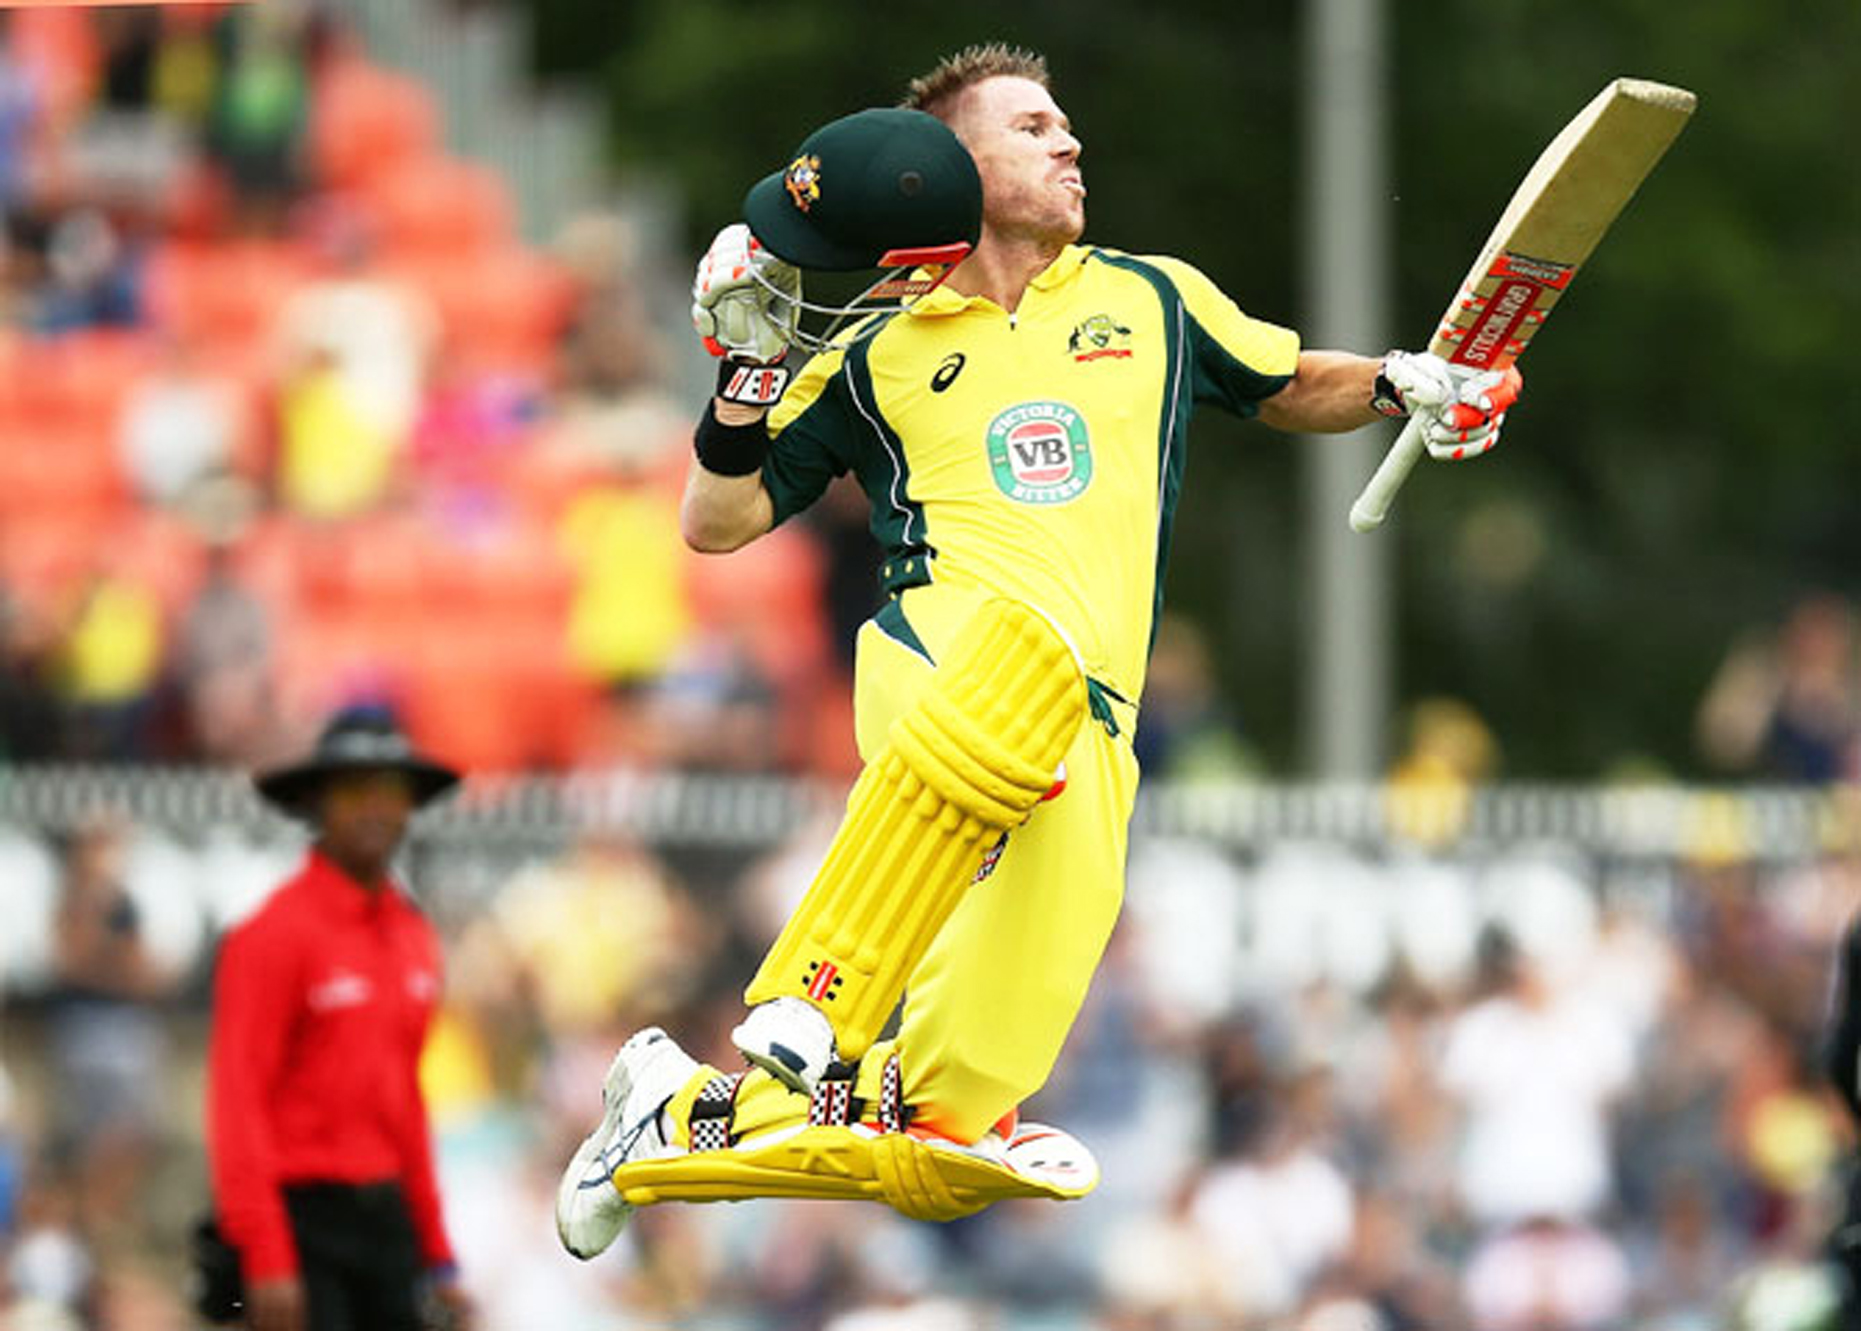 David Warner celebrating century during Australias big win over India in 1st ODI at Wankhade Stadium in Mumbai.